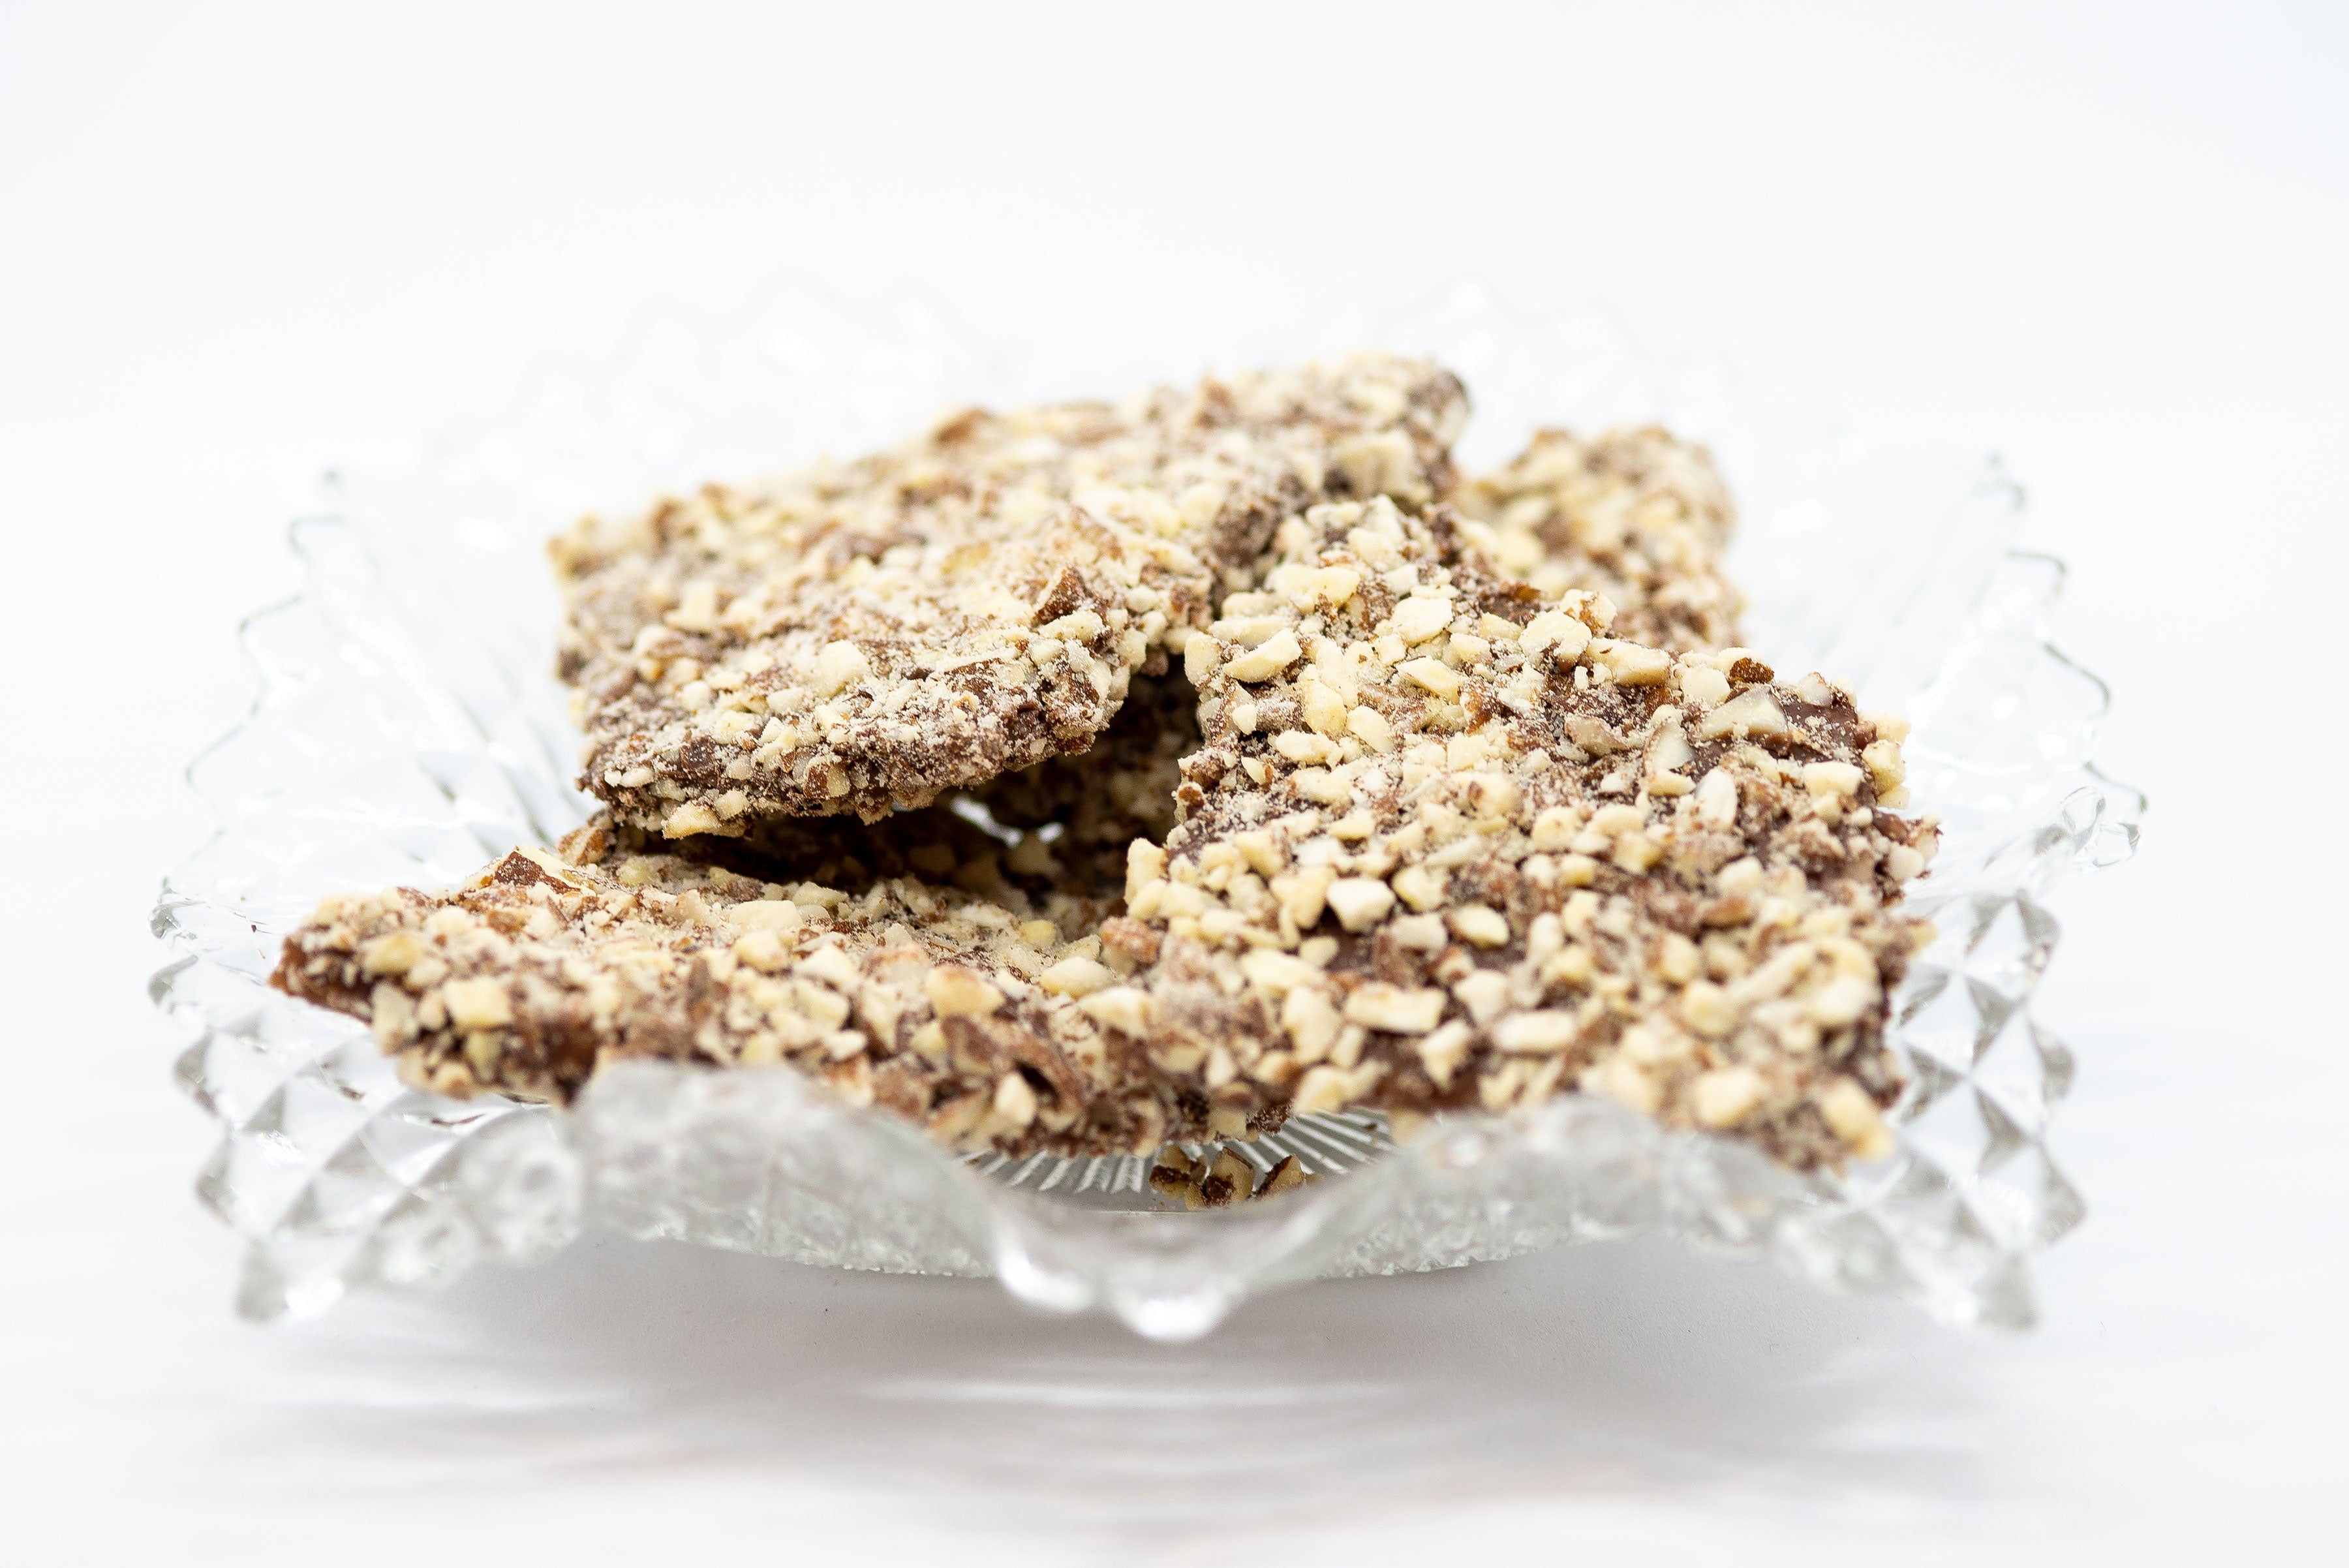 Almond Mealed English Toffee